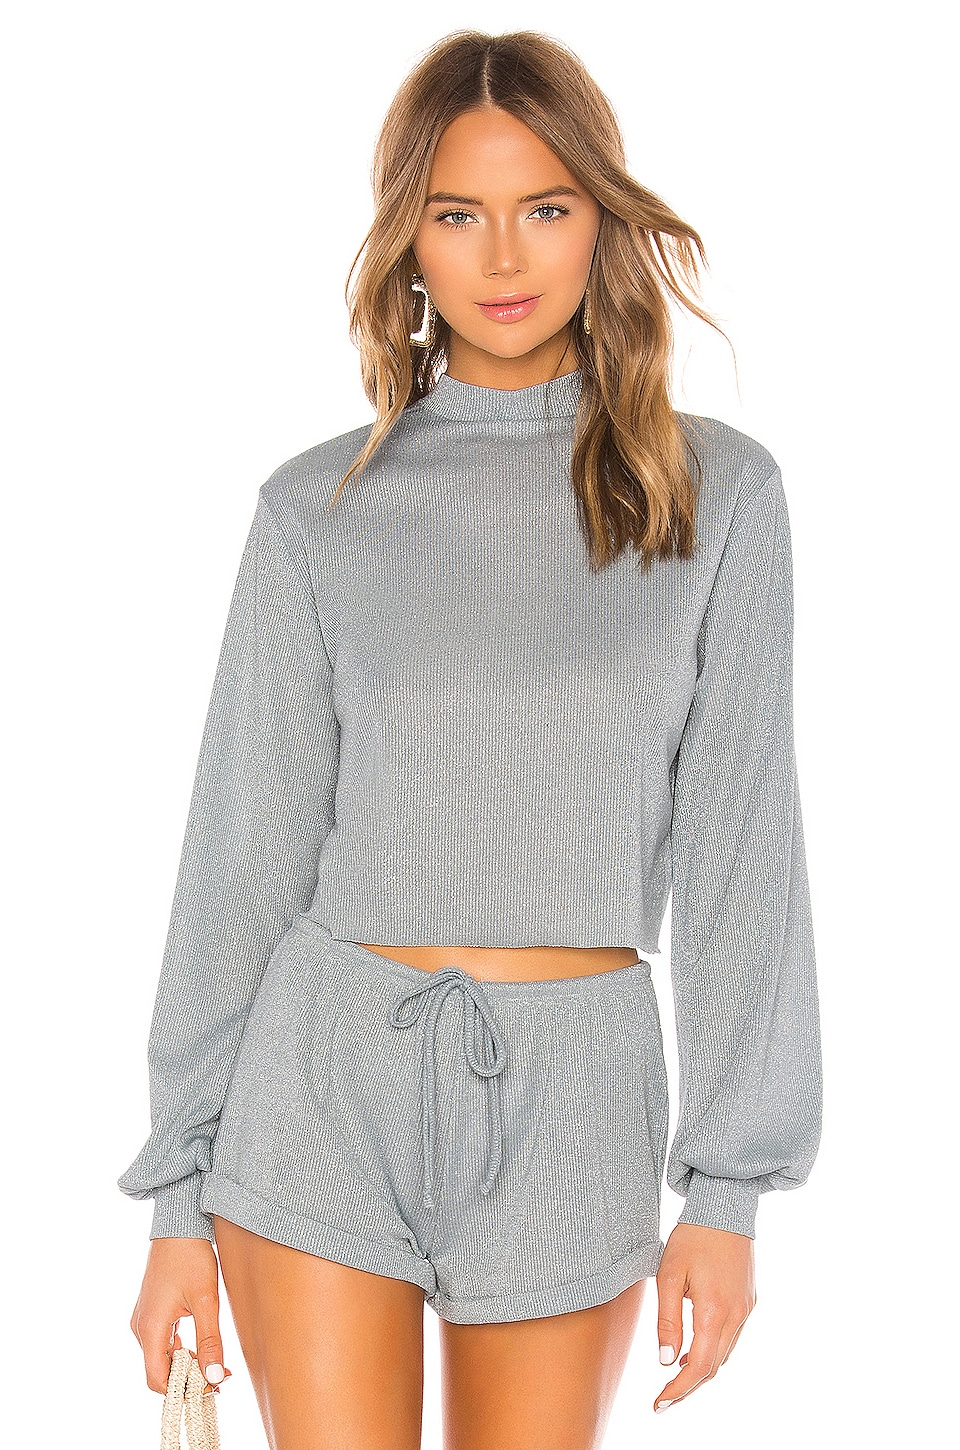 BEACH RIOT Sweater in Silver